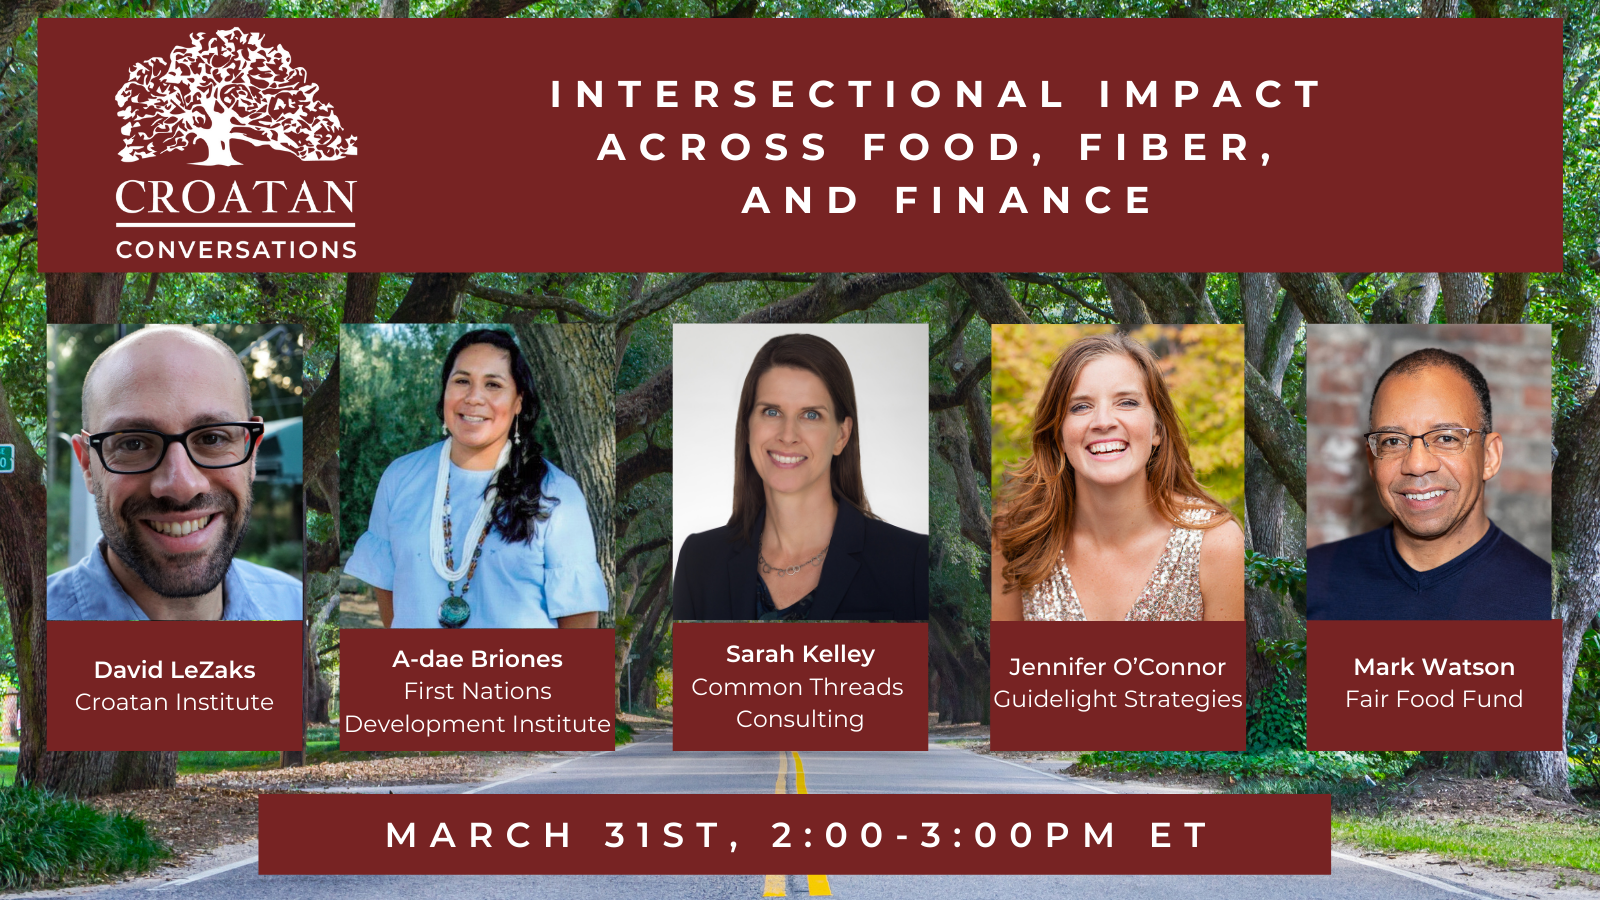 Intersectional Impact Across Food, Fiber and Finance